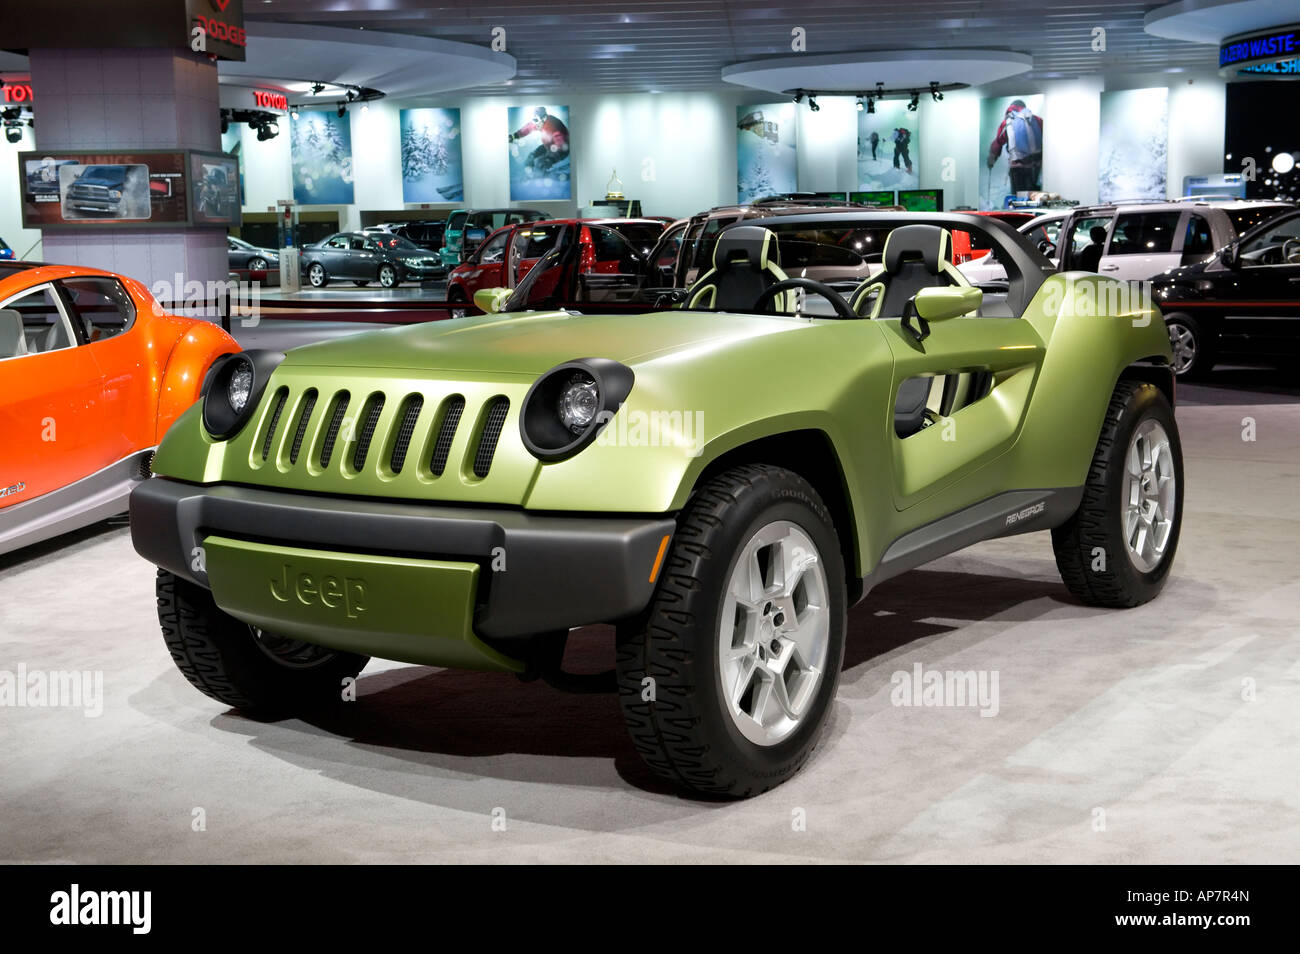 jeep renegade diesel hybrid concept car at the 2008 north american stock photo royalty free. Black Bedroom Furniture Sets. Home Design Ideas